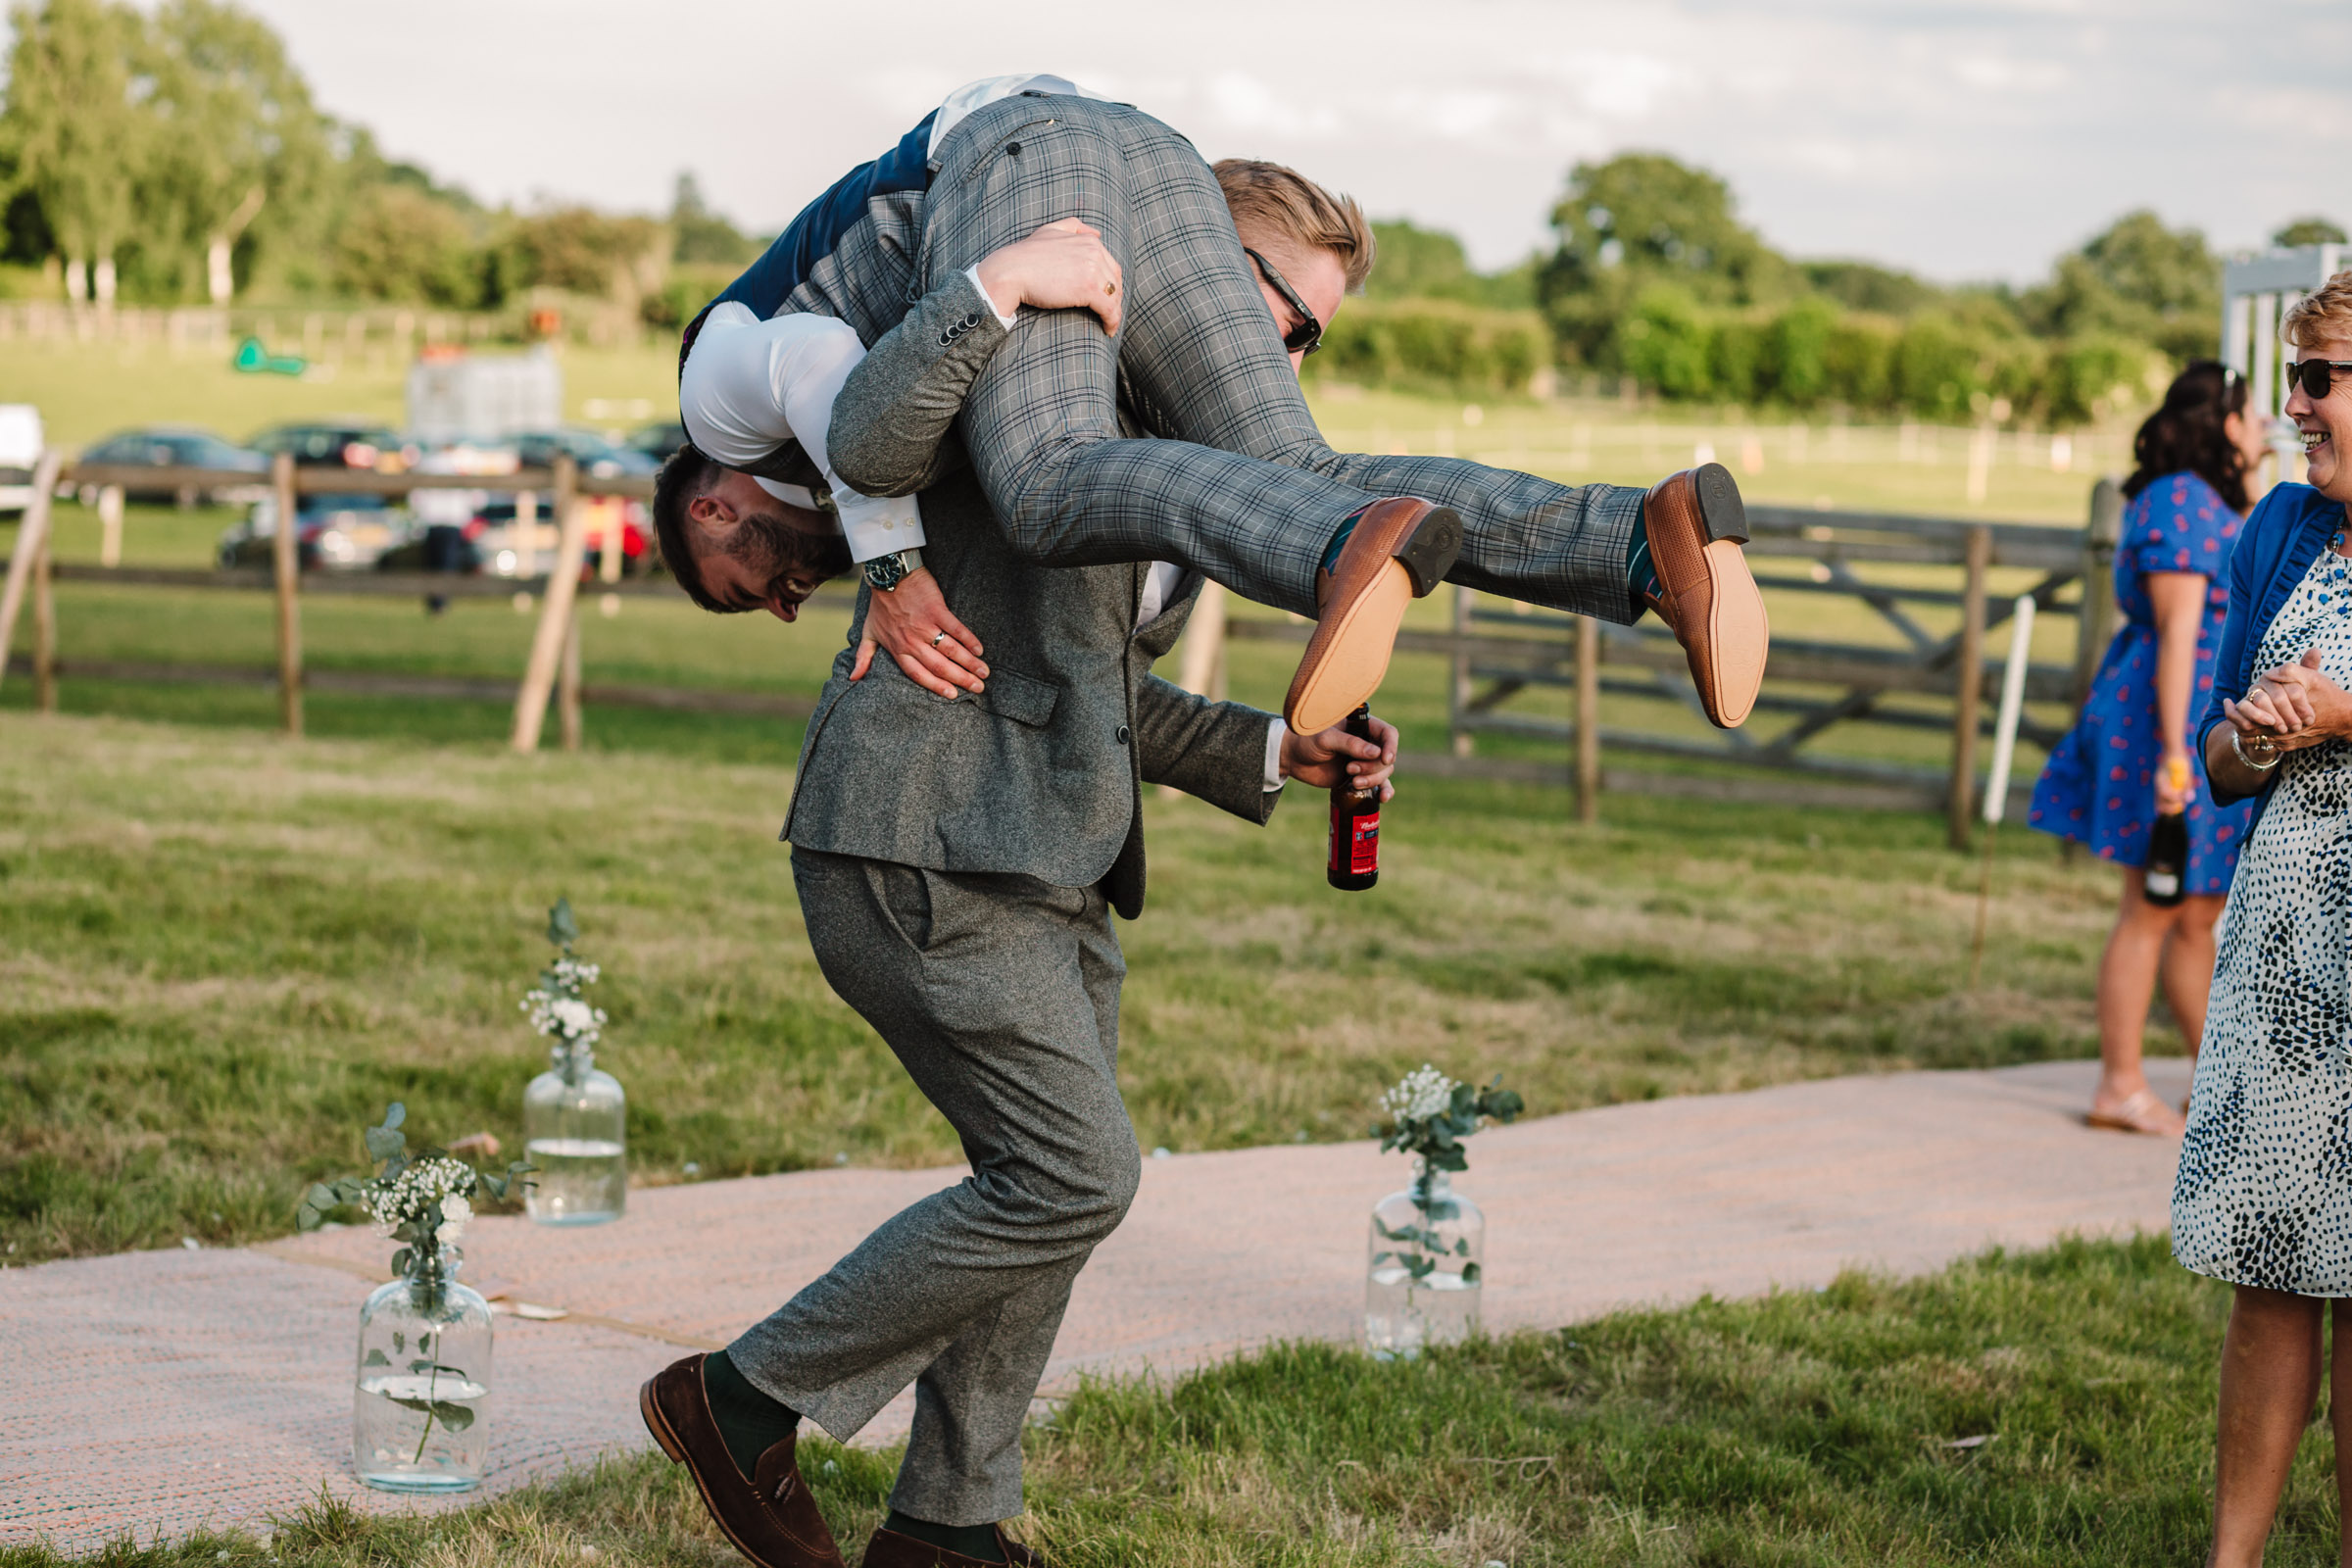 Groom being picked up by guest at wedding in kenilworth